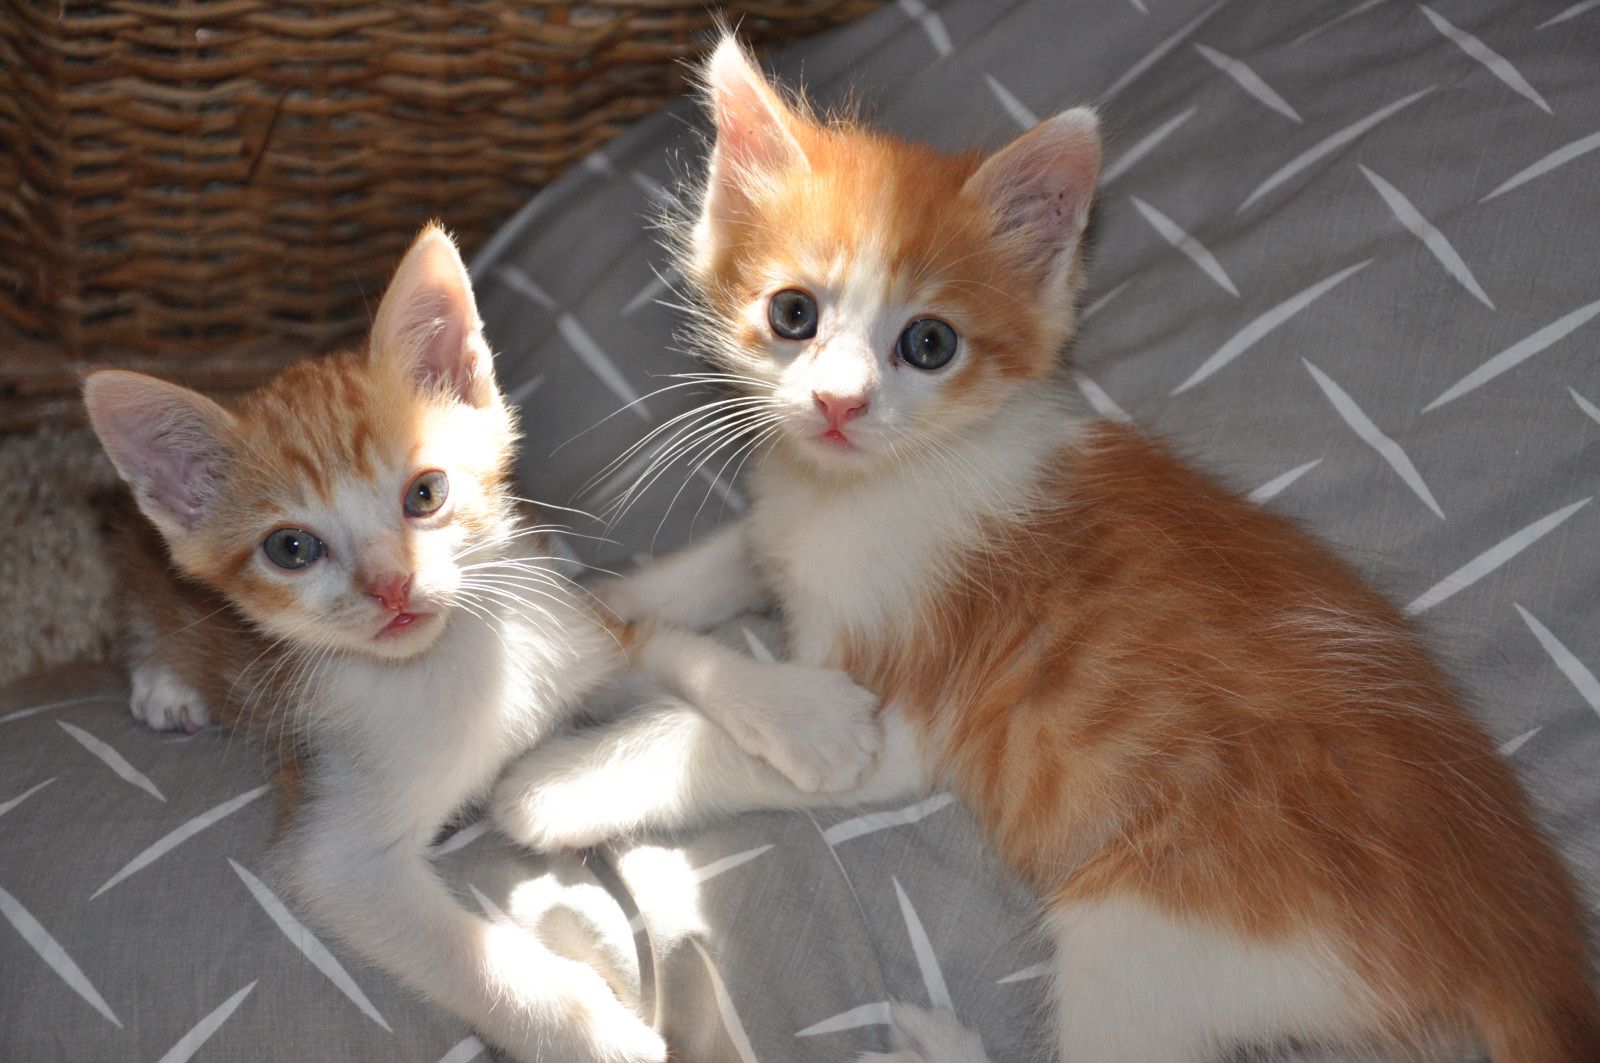 Cute kittens - orange and white